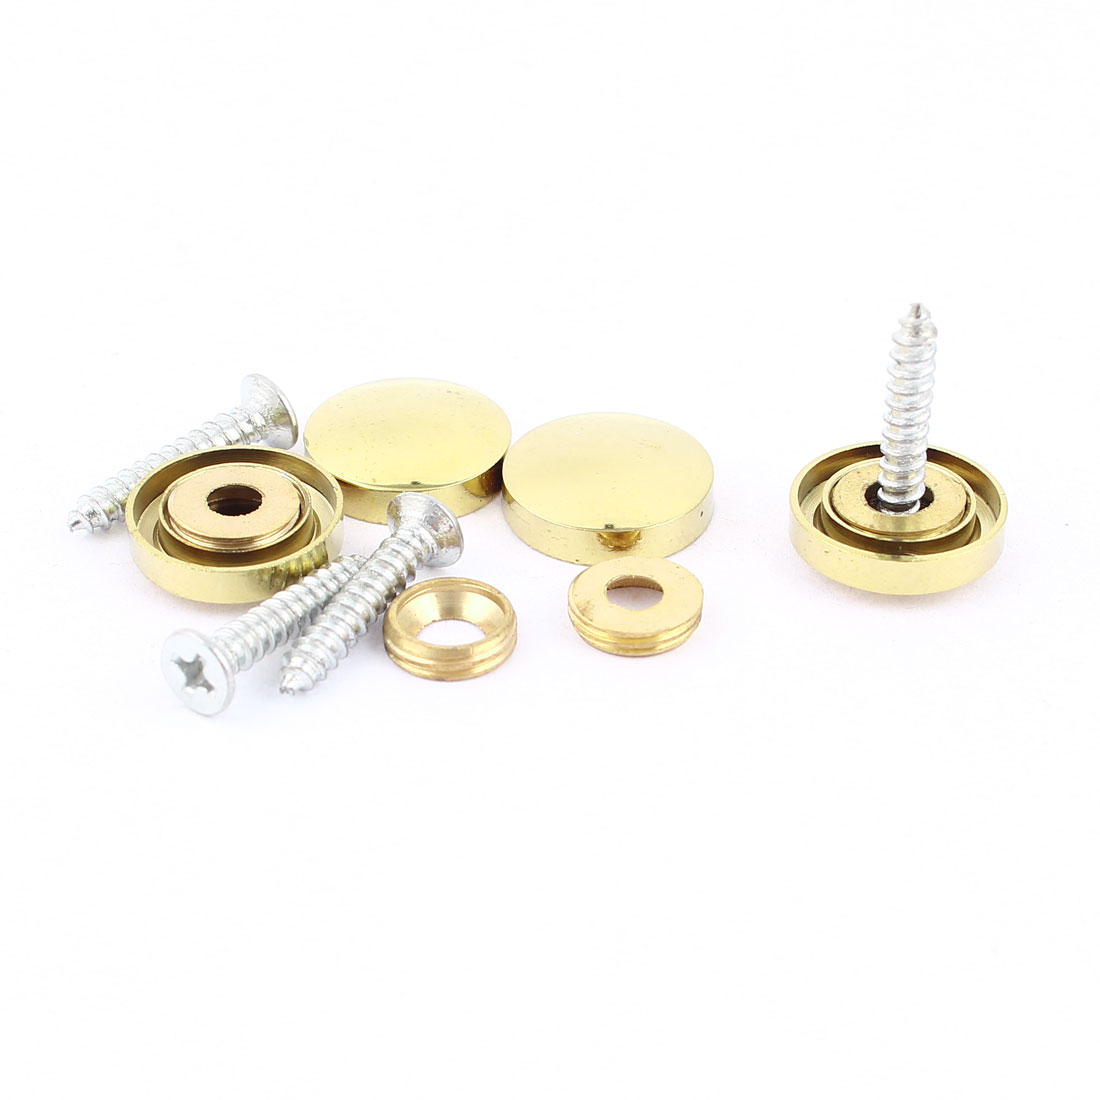 4 Pcs Fitting Parts Brass Tone 16mm Diameter Screw Cap Mirror Nails Decoration Lid